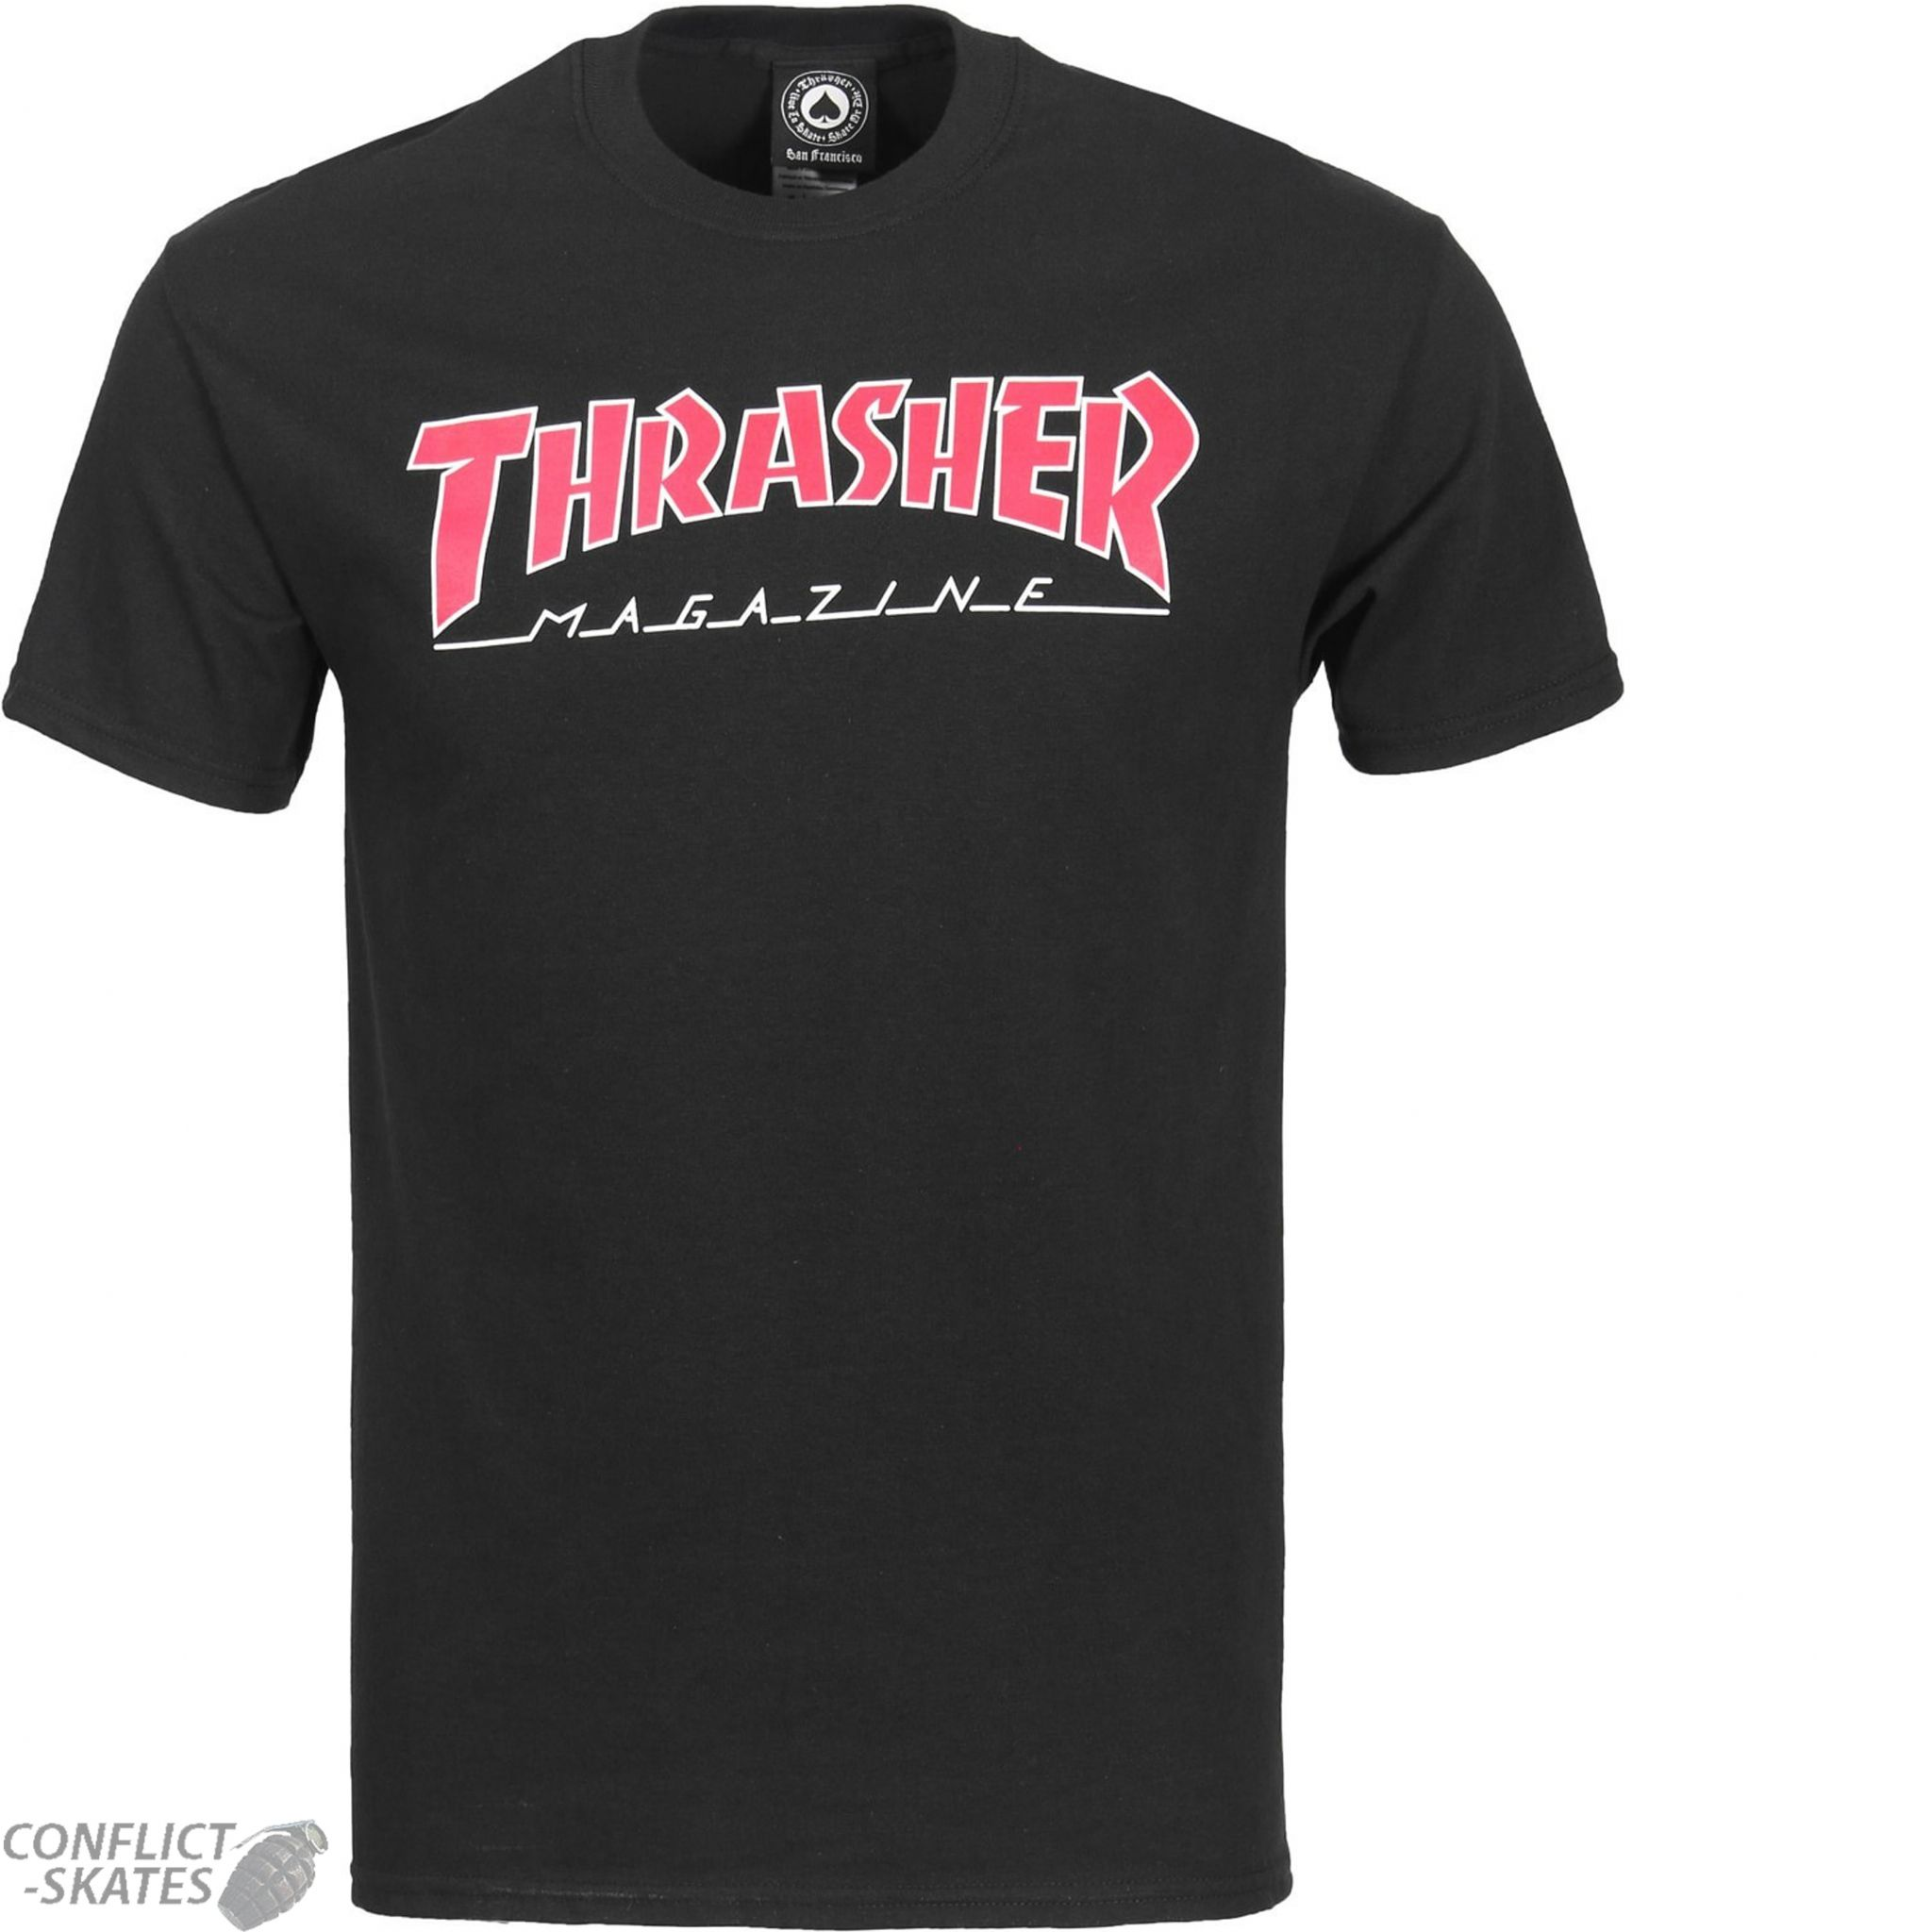 fe304ef13861 THRASHER MAGAZINE Outlined Skateboard T-Shirt BLACK Red S M L or XL punk